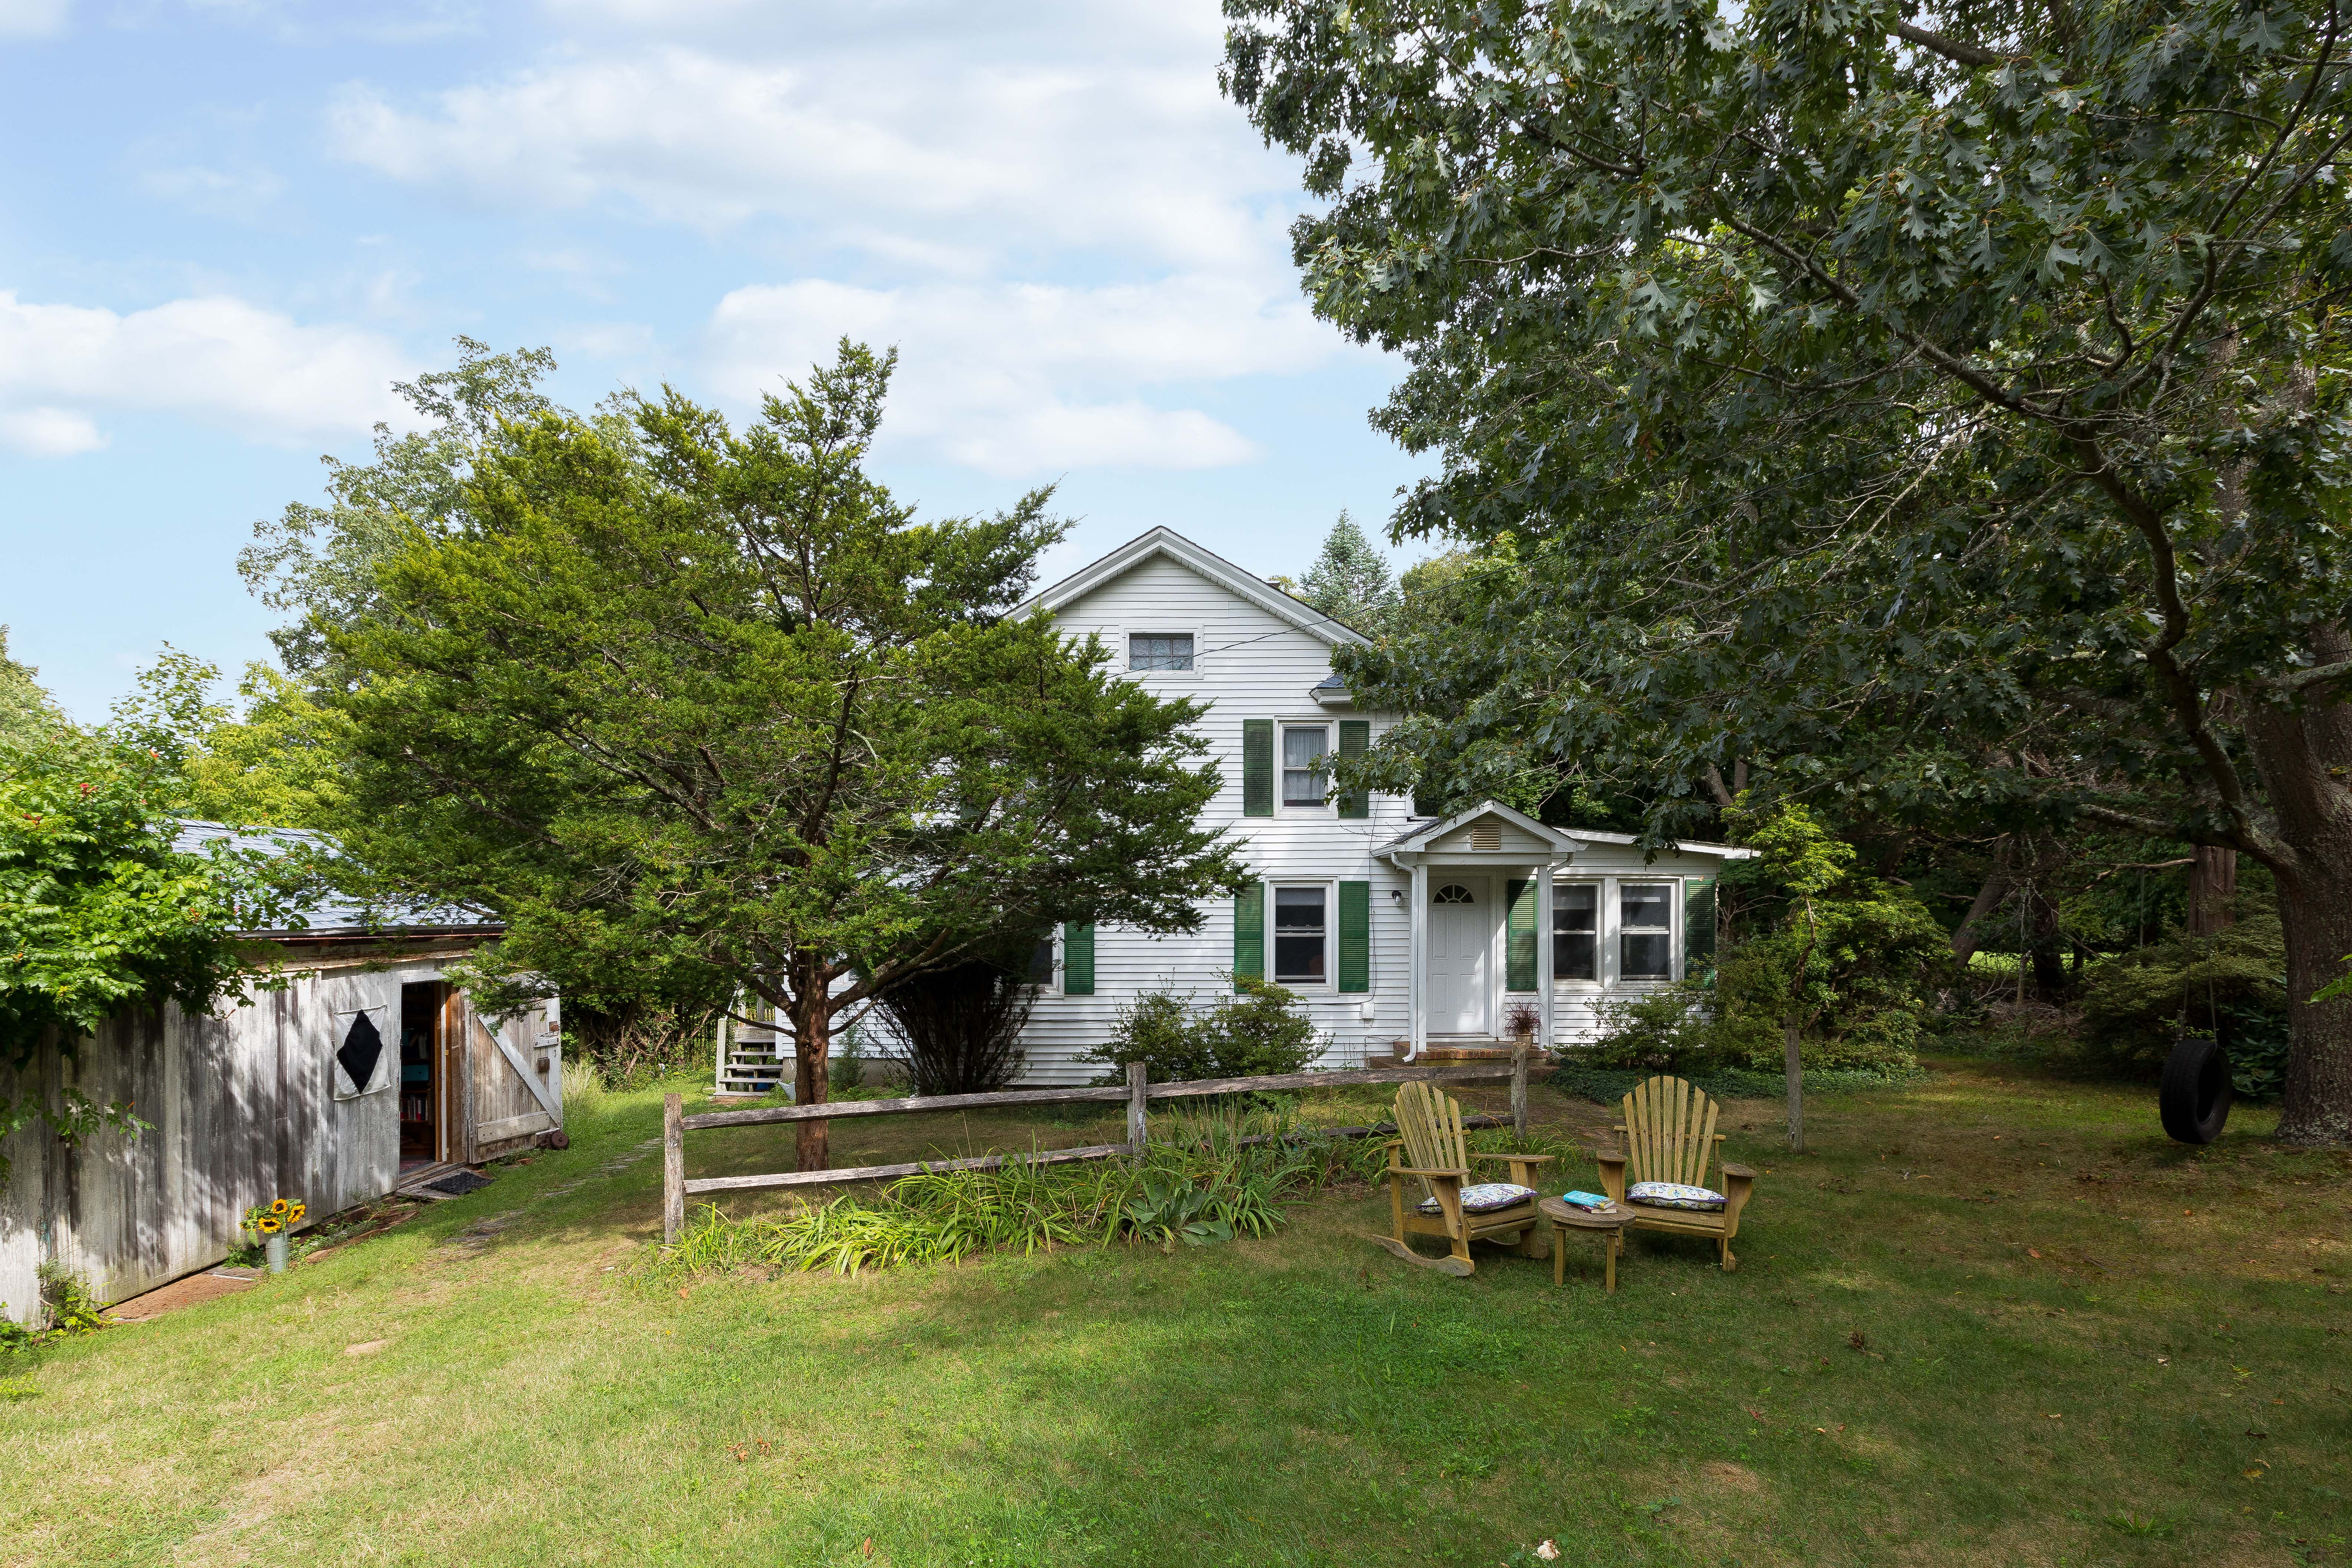 Hamptons Real Estate & Homes for Sale | Out East